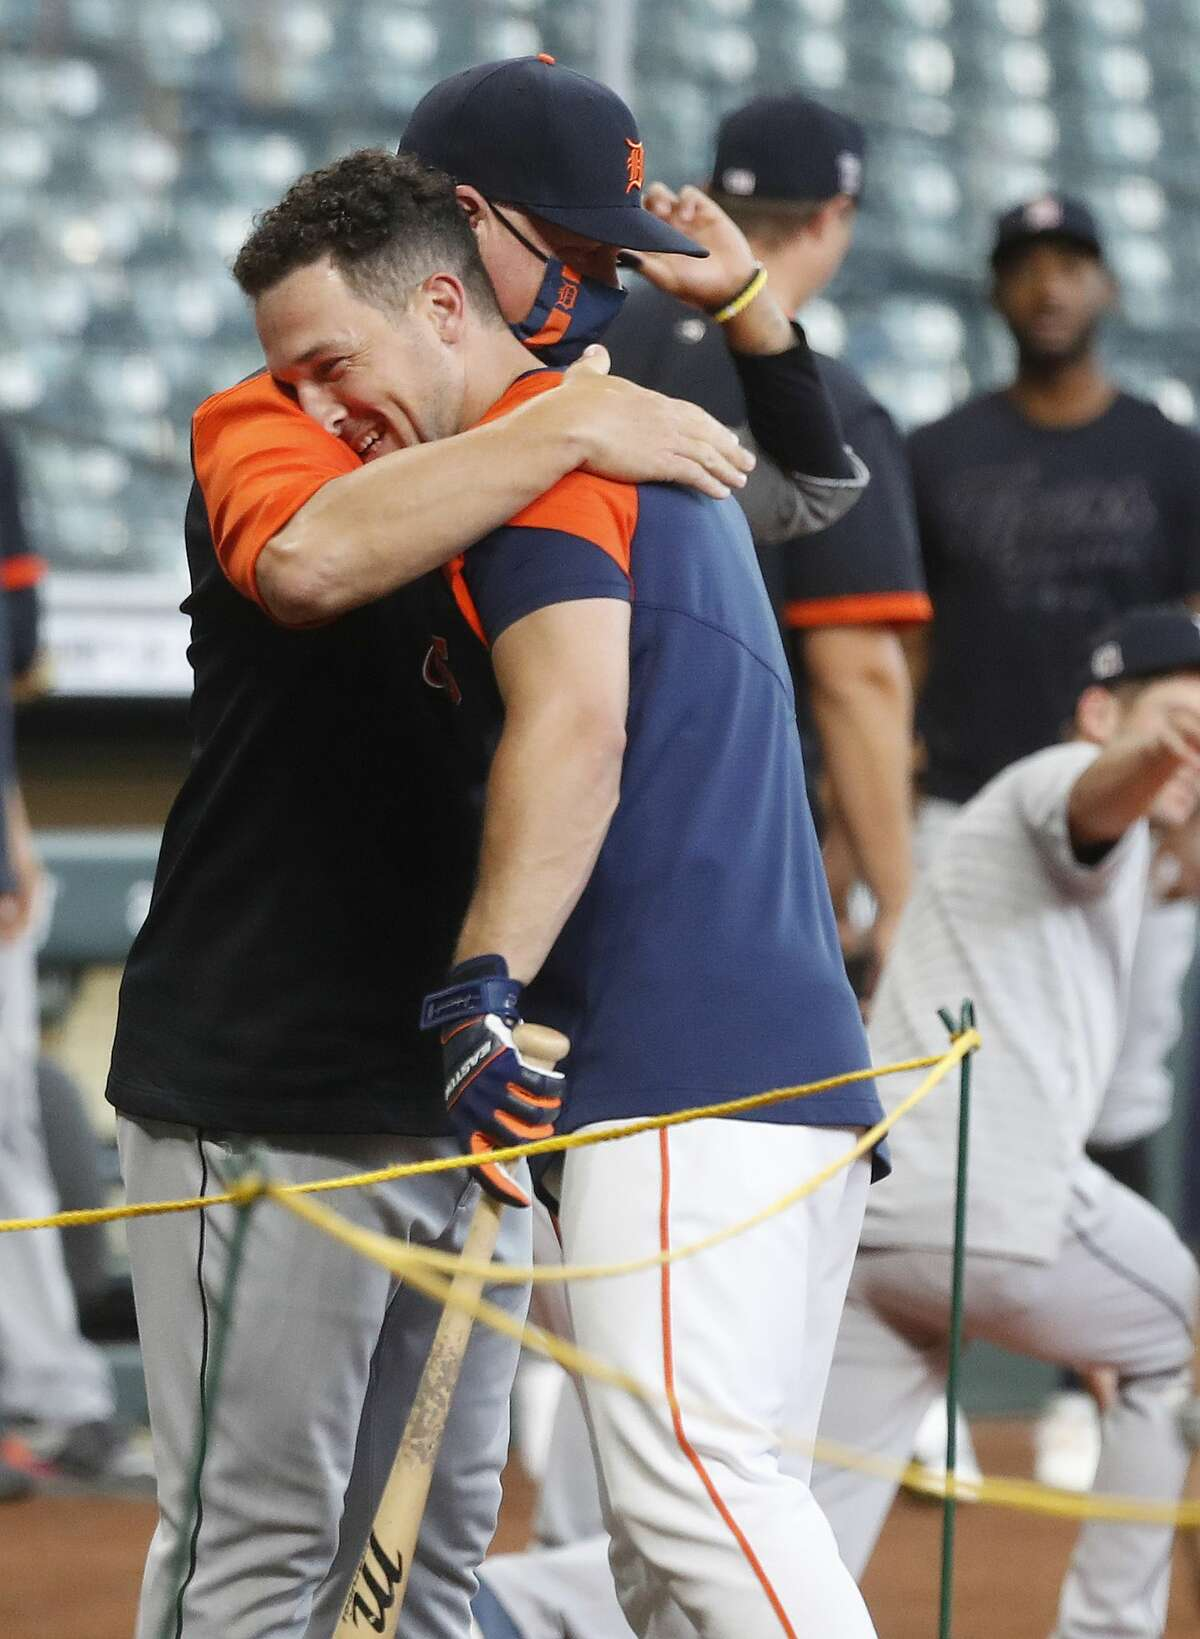 Detroit Tigers manager A.J. Hinch gives Houston Astros Alex Bregman (2) a hug during batting practice before the start of an MLB baseball game at Minute Maid Park, in Houston, Monday, April 12, 2021.